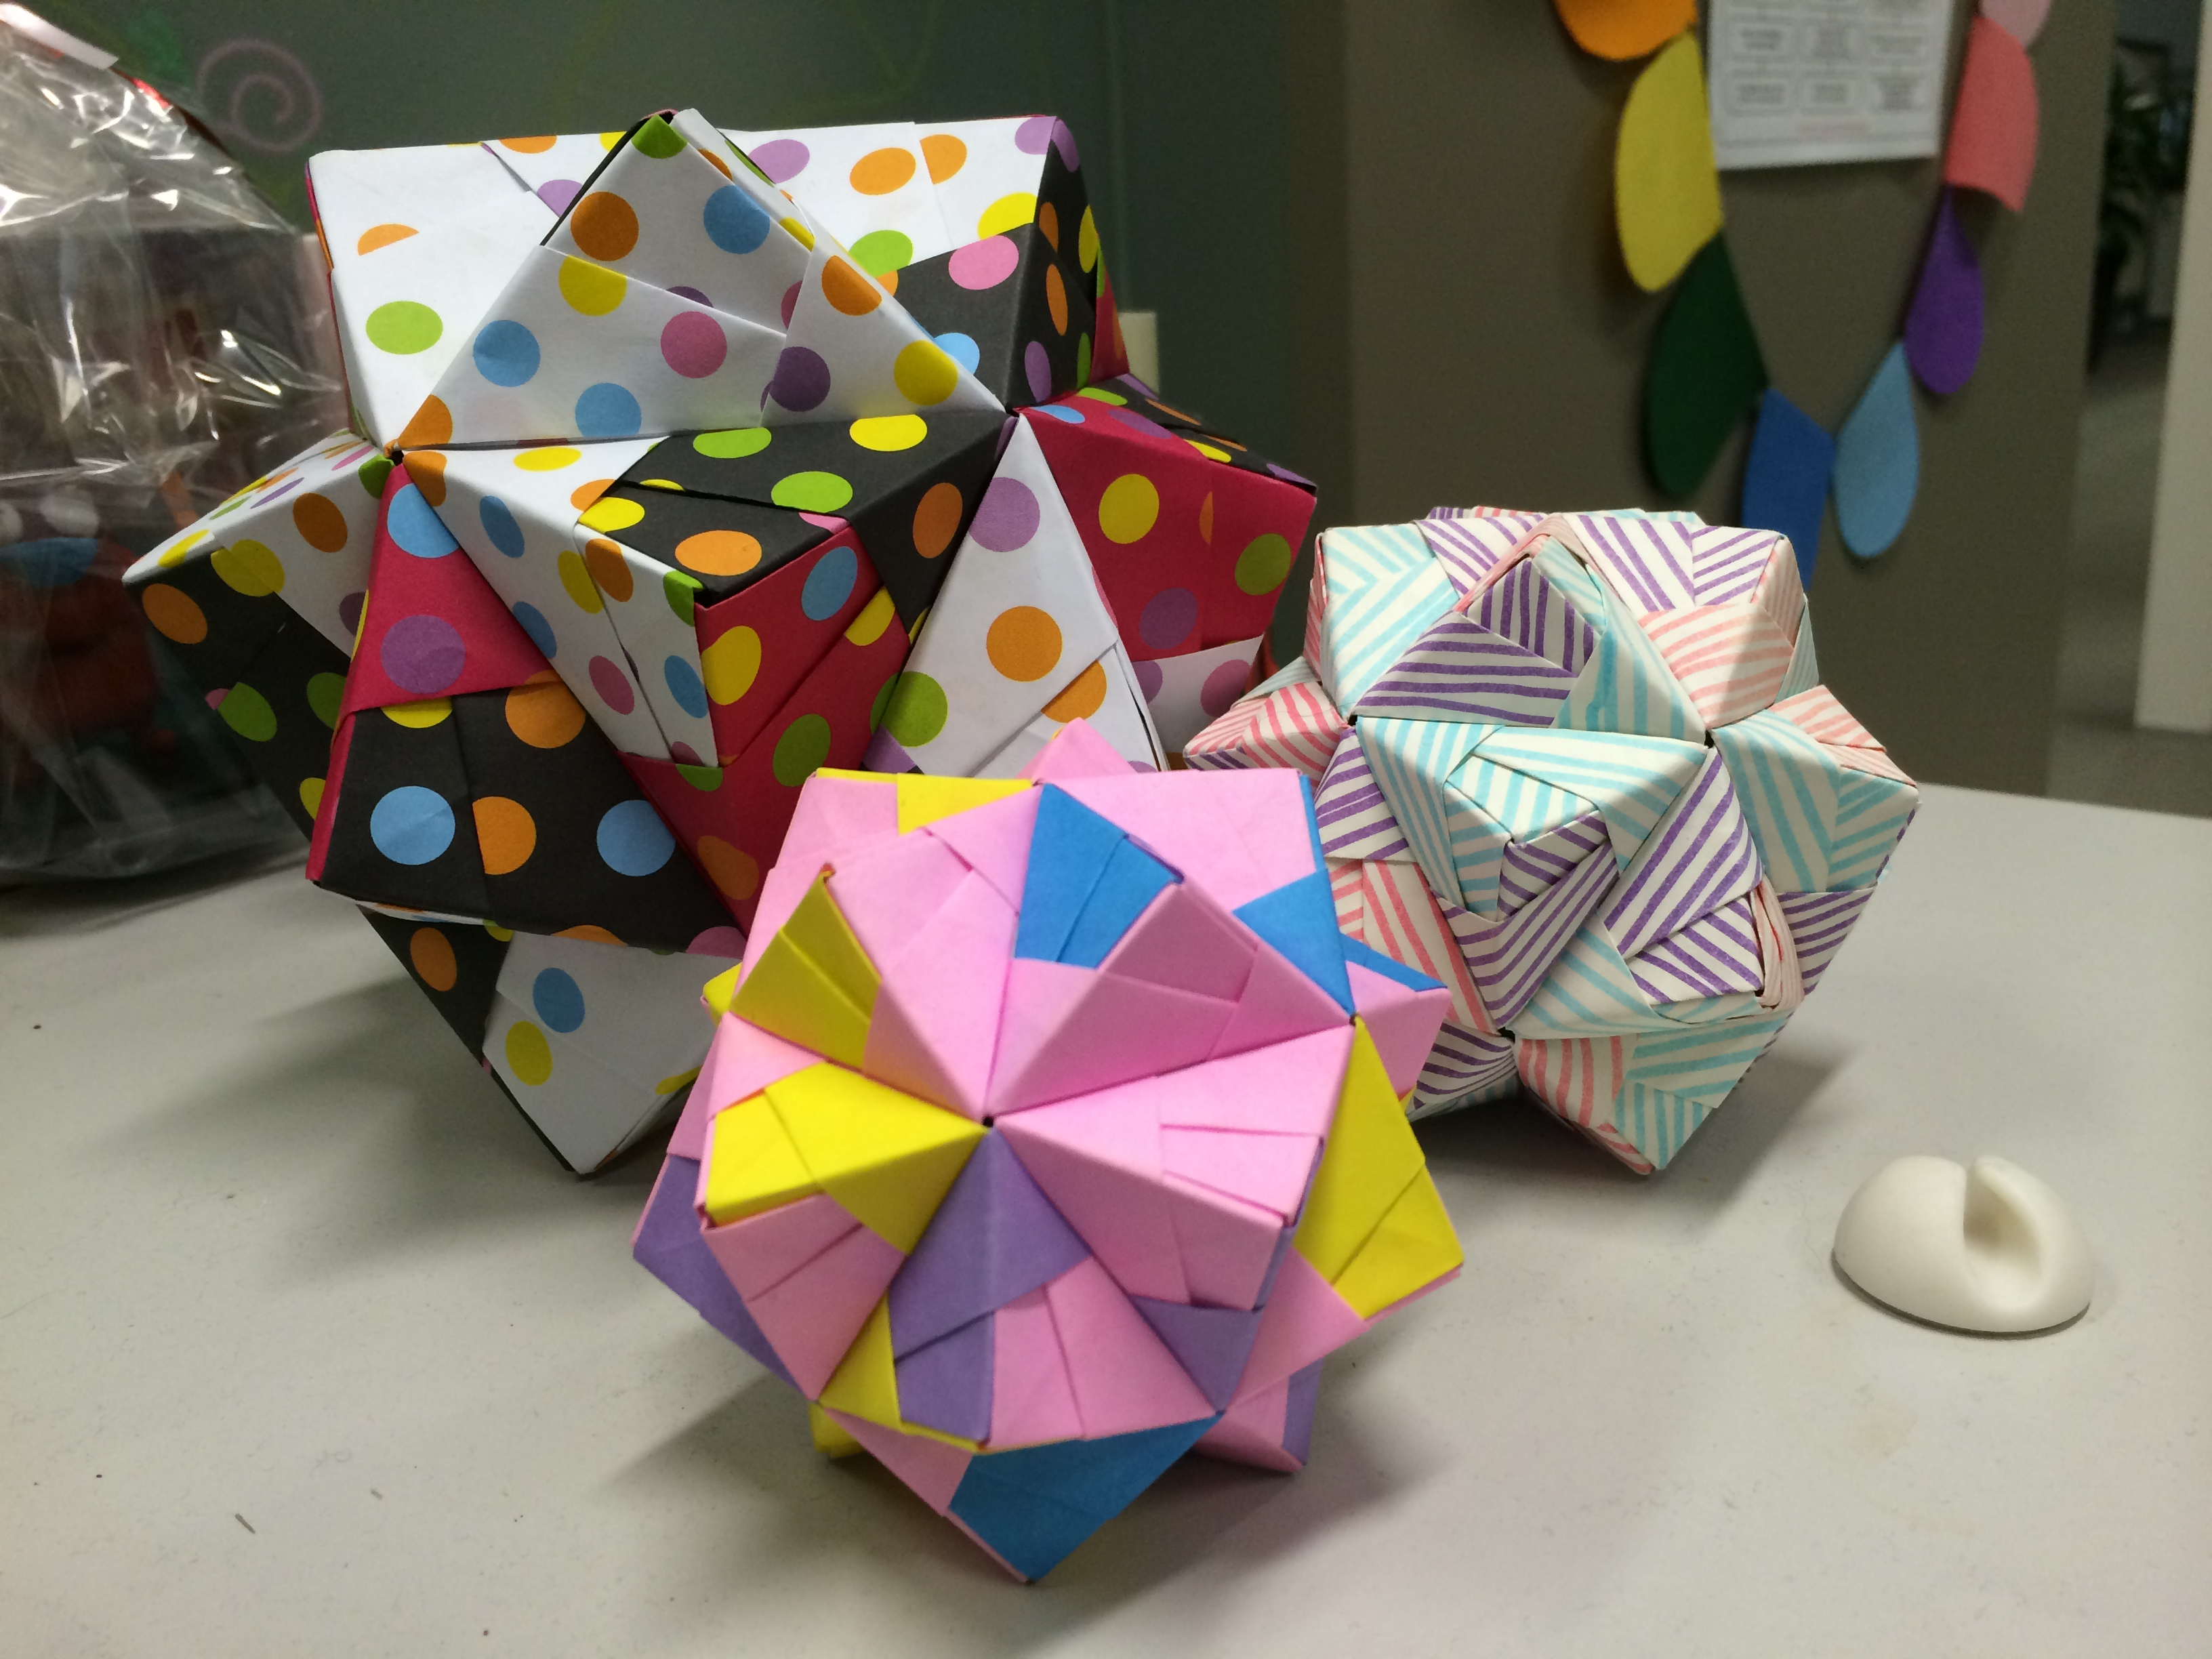 I Have Been Following Penguinorigami On Tumblr For A Little While Now And They Make Lot Of Pretty Modular Origami Pieces So Followed Link To